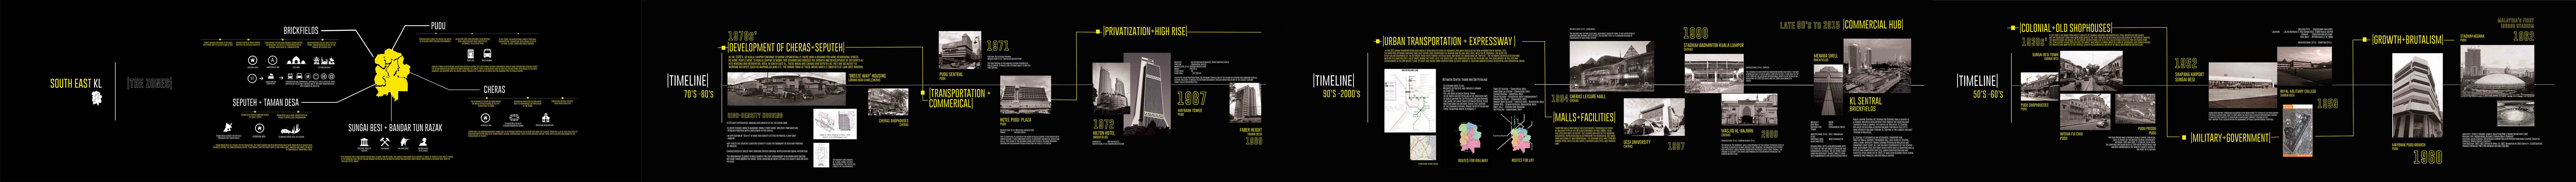 Modern Architecture Timeline arc60203 architecture culture and history 2 - yang